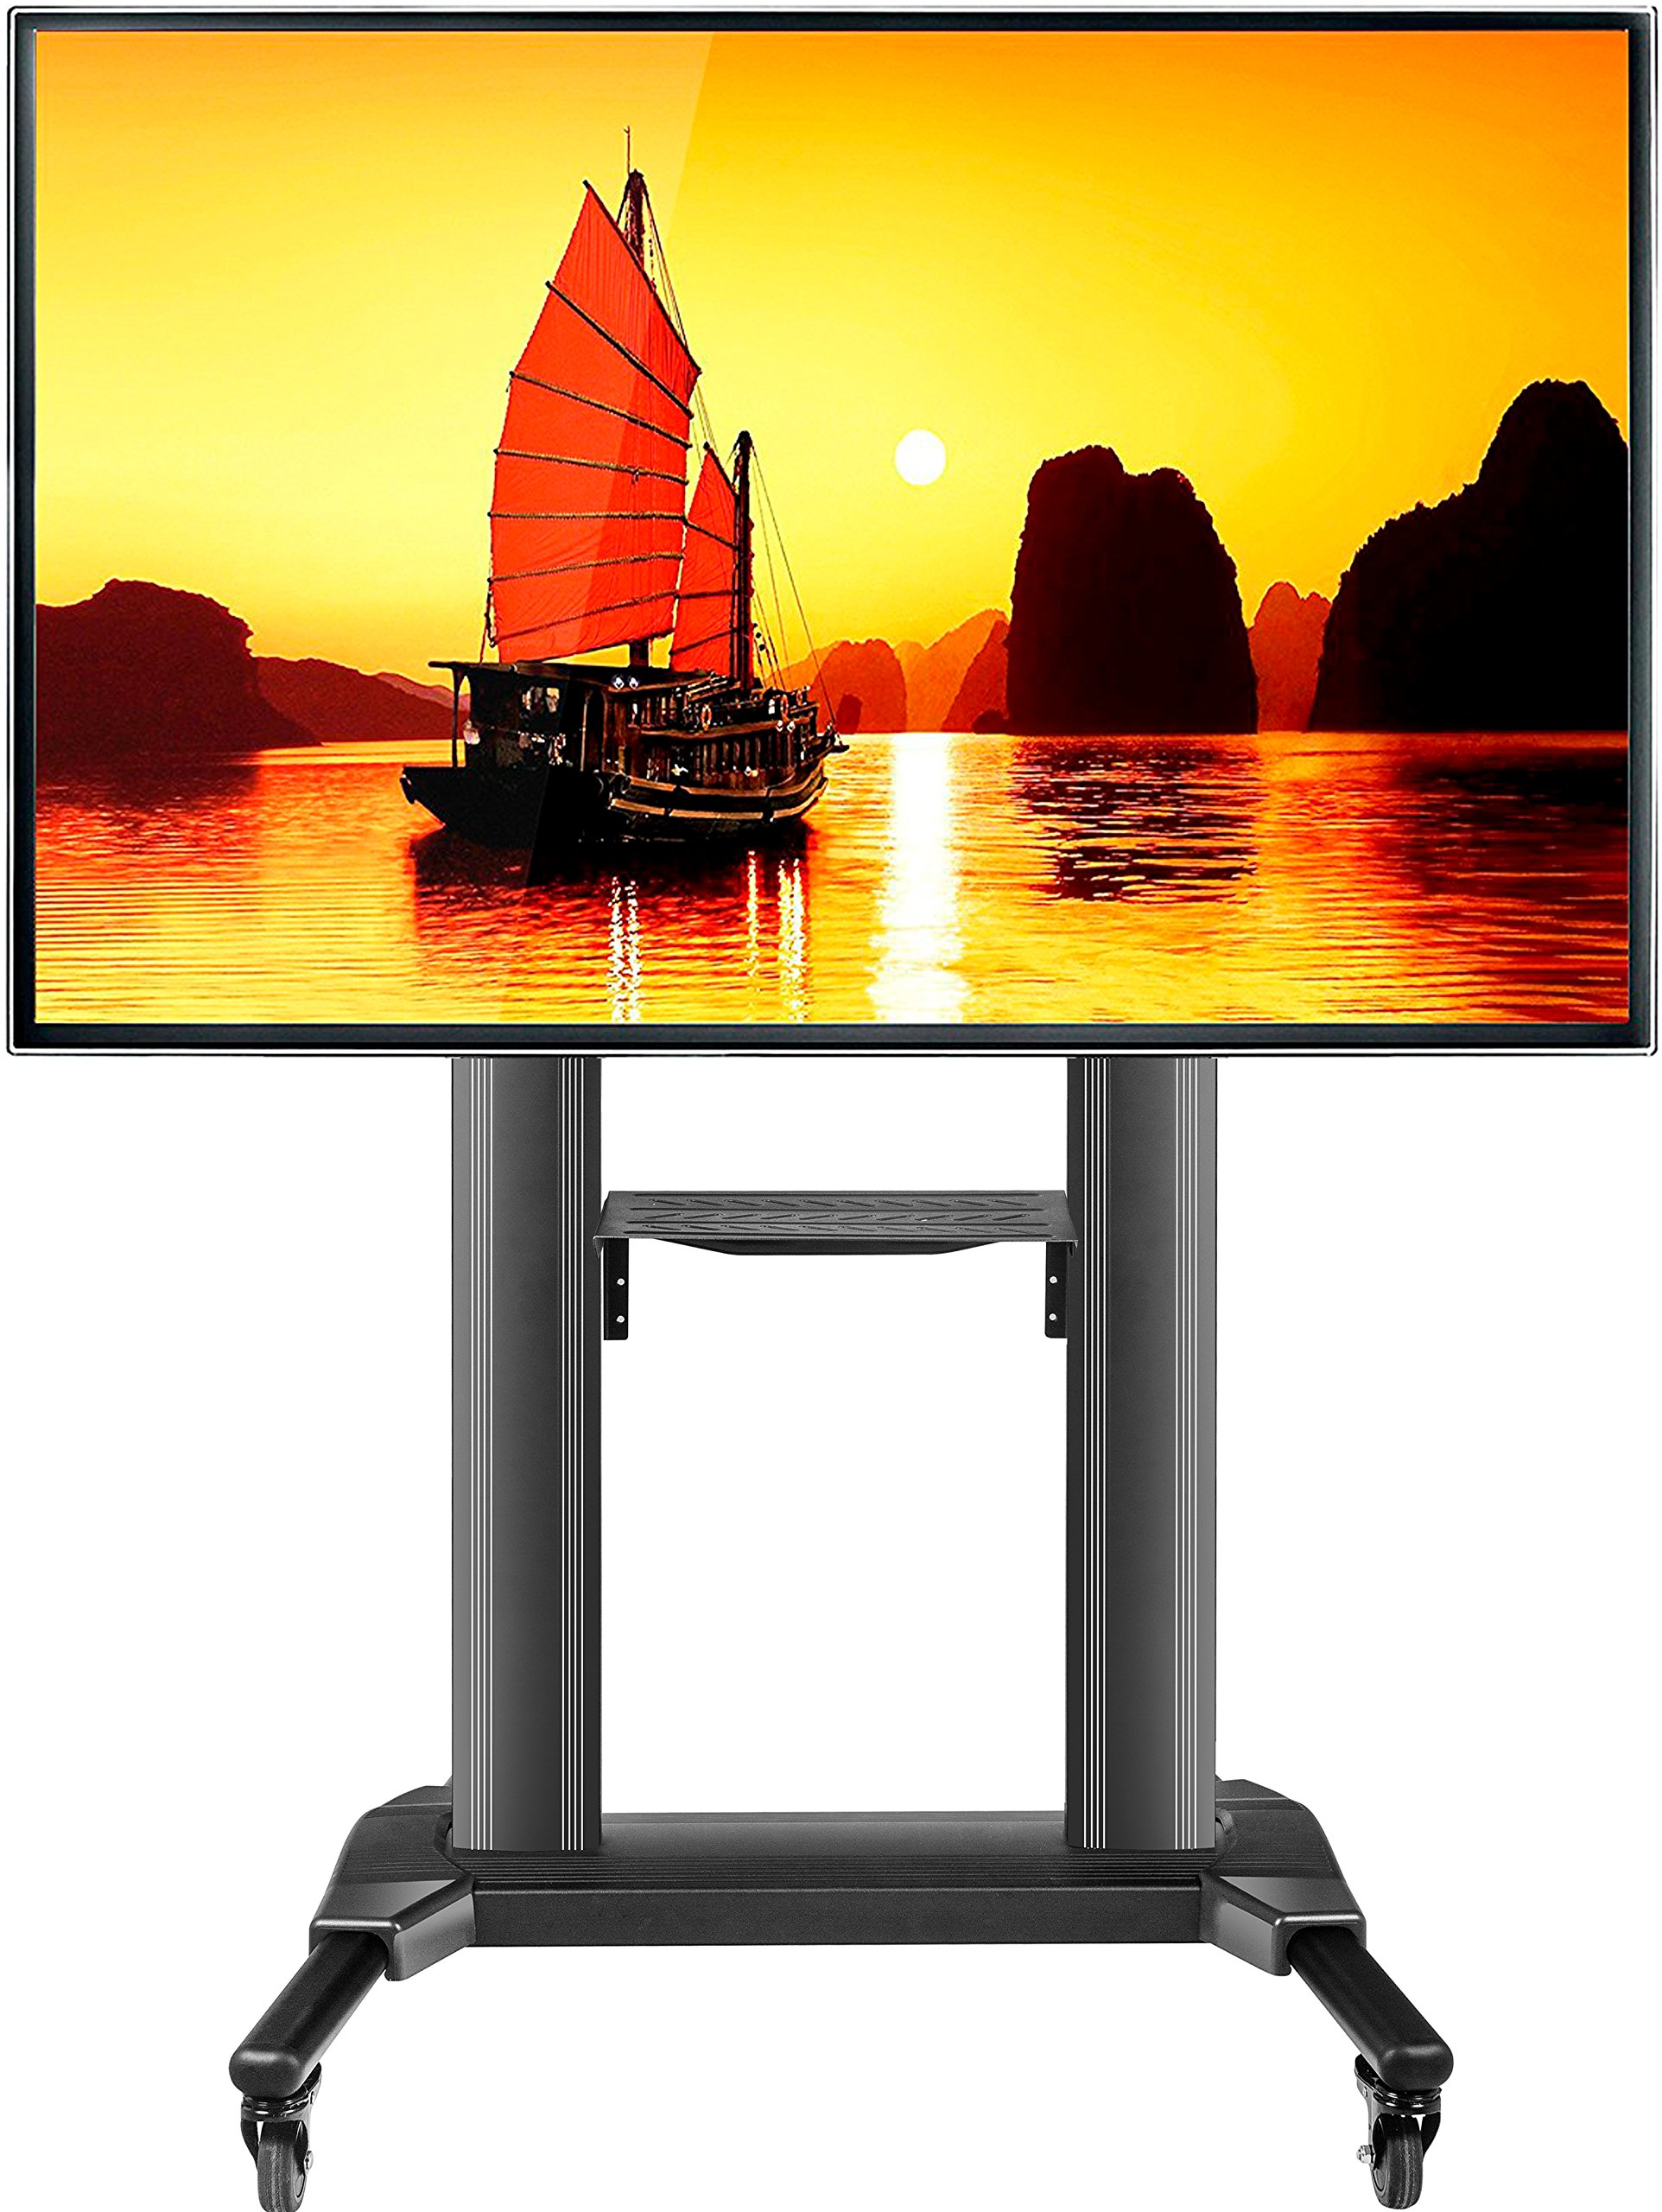 ONKRON Universal Mobile TV cart TV Stand for 40 to 75-Inch Flat Panel TVs up to 100 lbs (TS27-71)